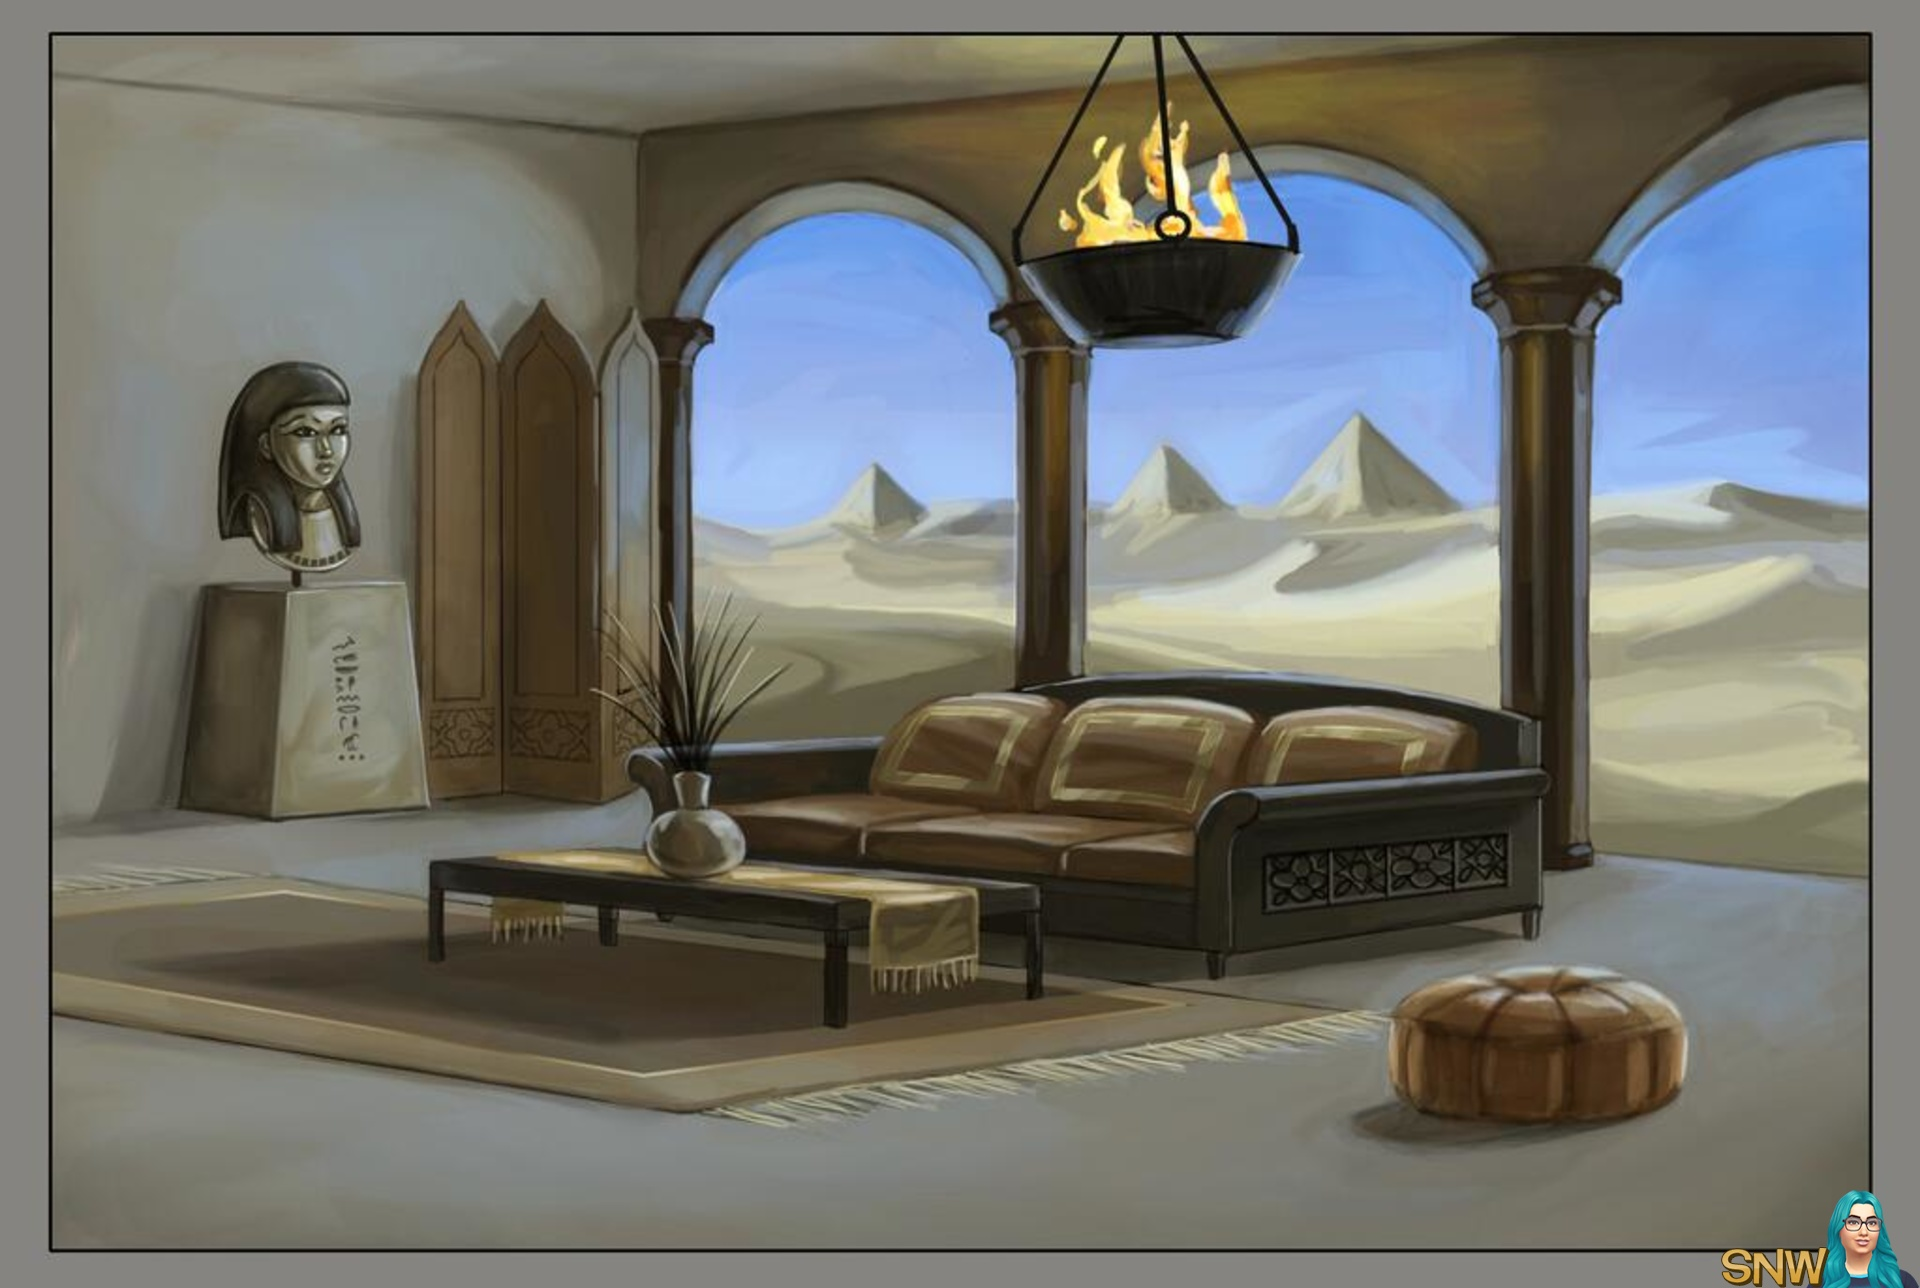 I Have Some World Adventures Concept Art To Share Featuring An Egyptian  Themed Living Room!